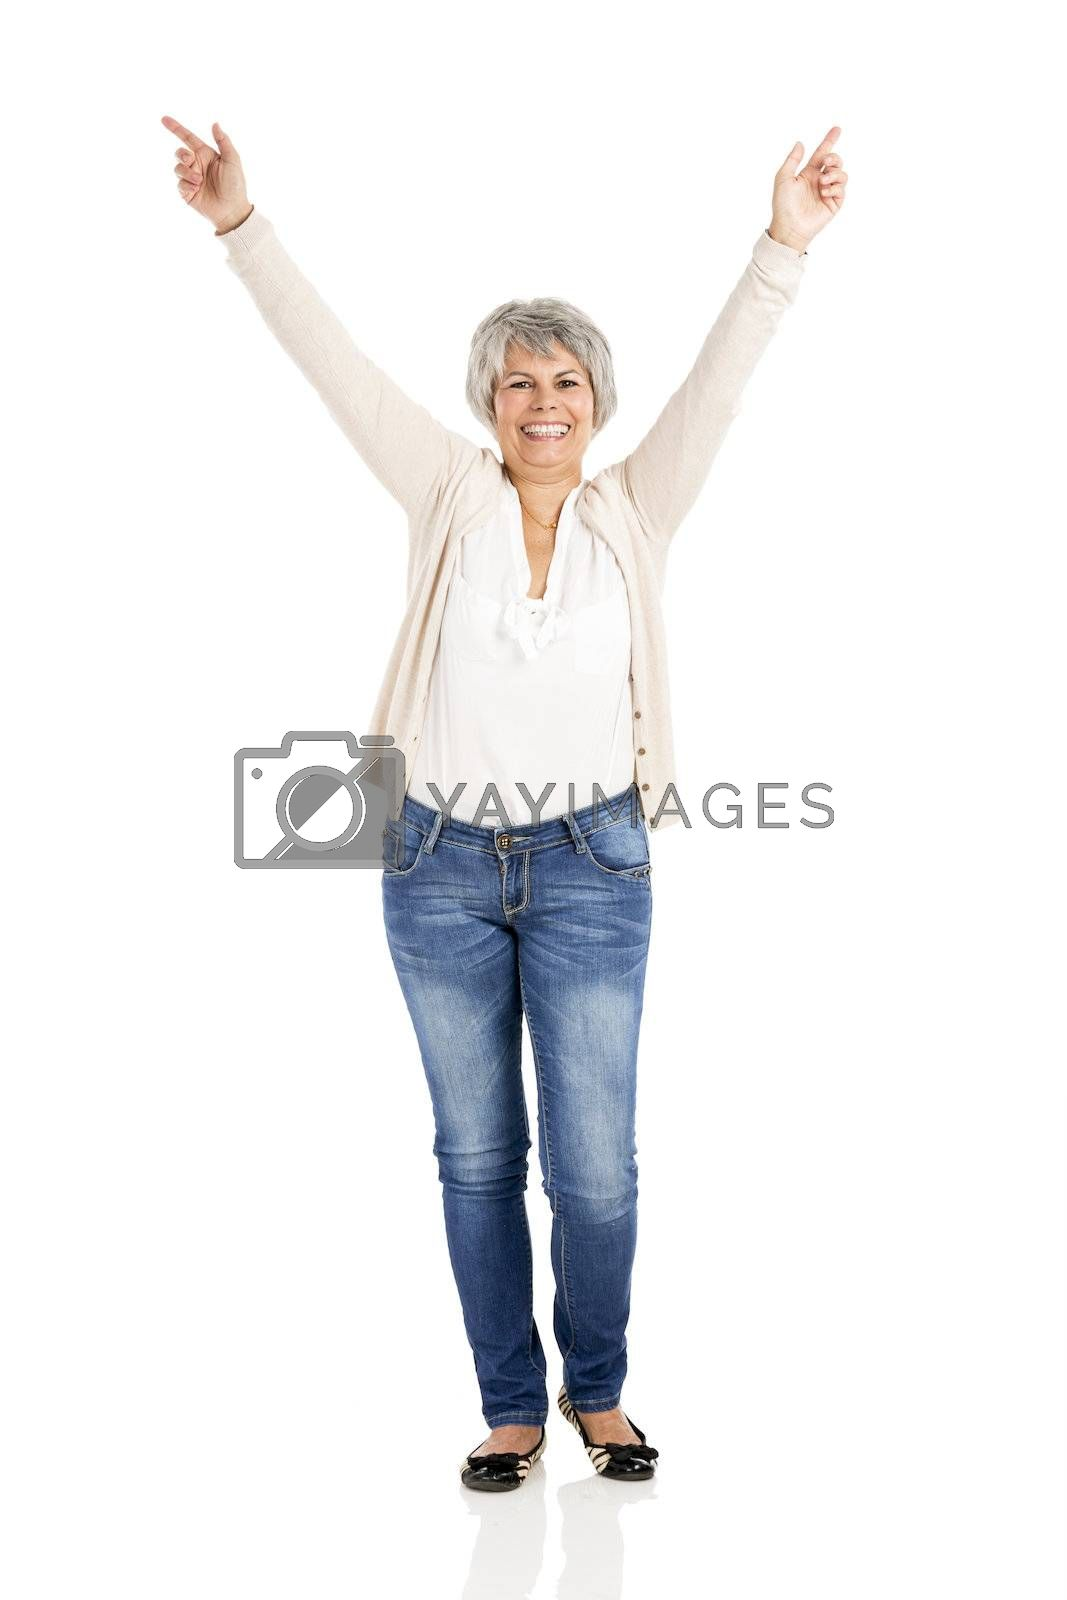 Royalty free image of Happy Elderly woman by Iko